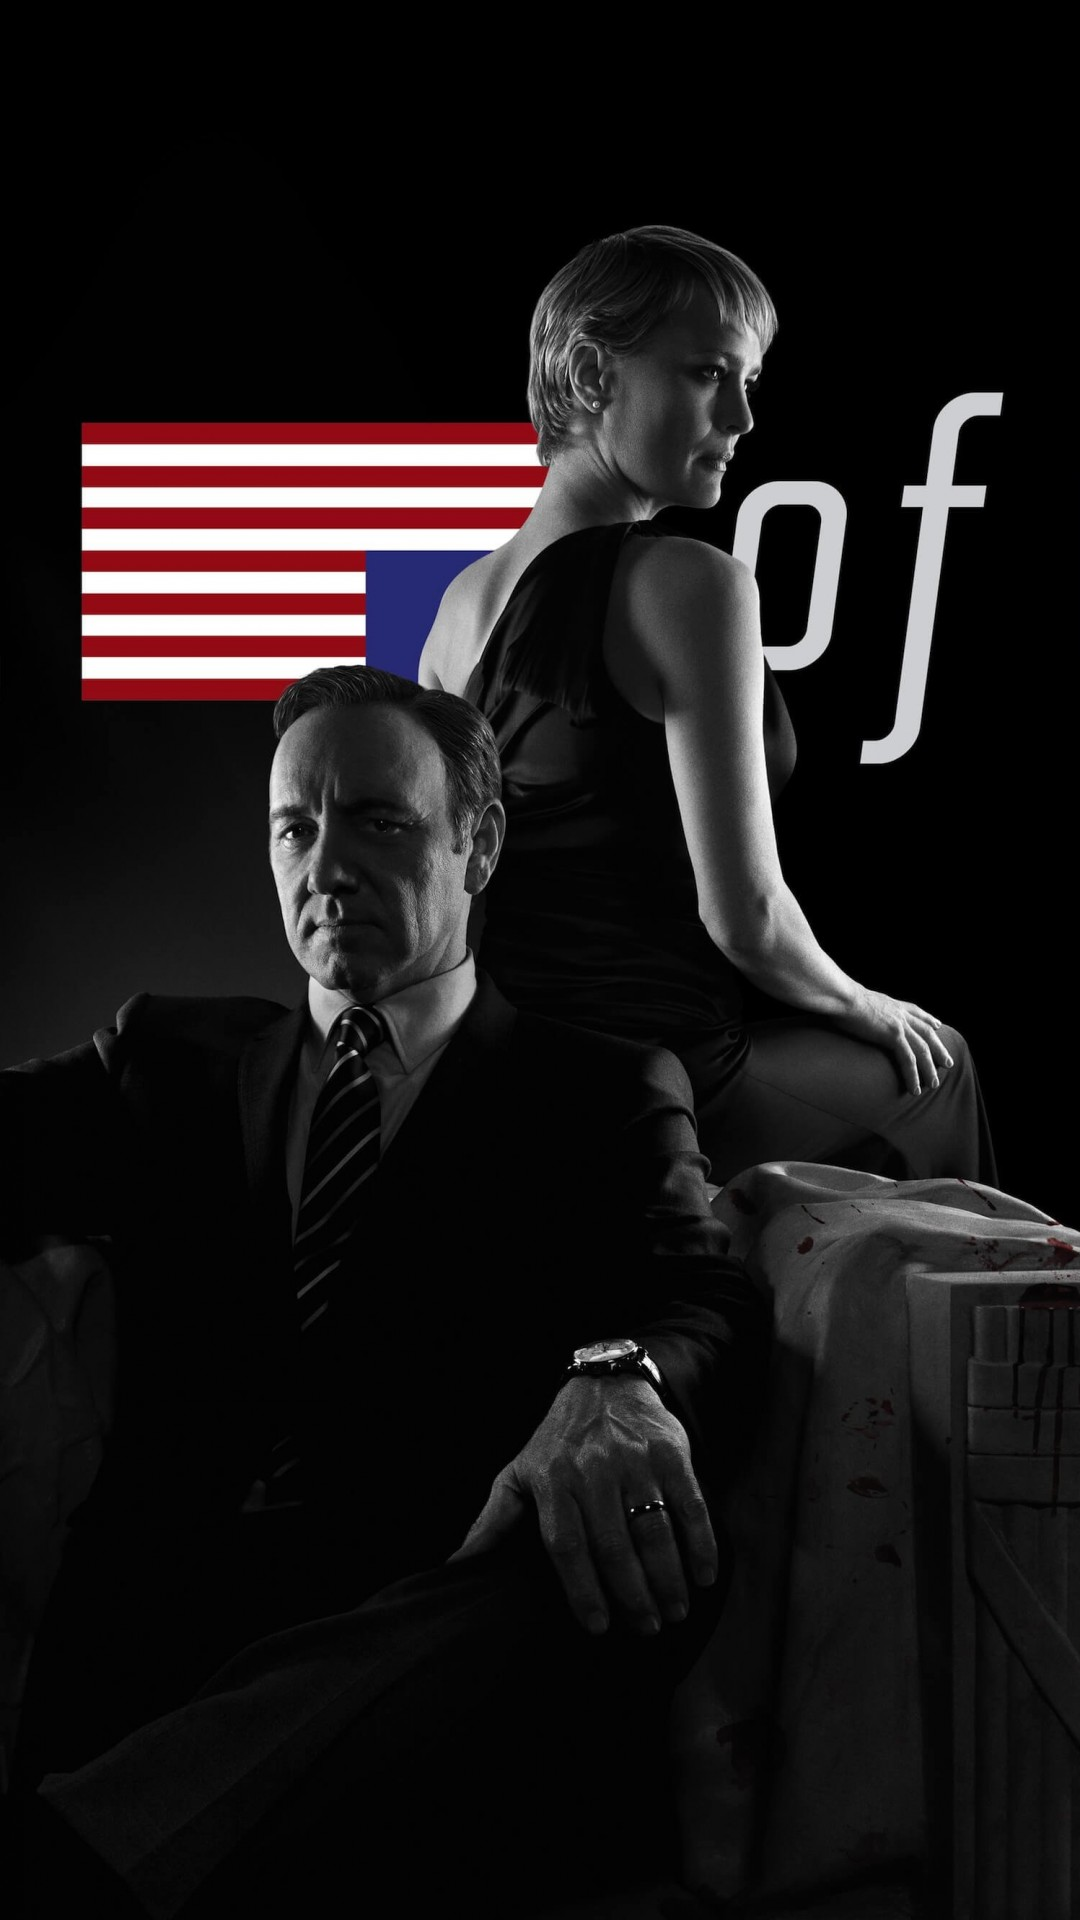 House of Cards - Black & White Wallpaper for SONY Xperia Z2